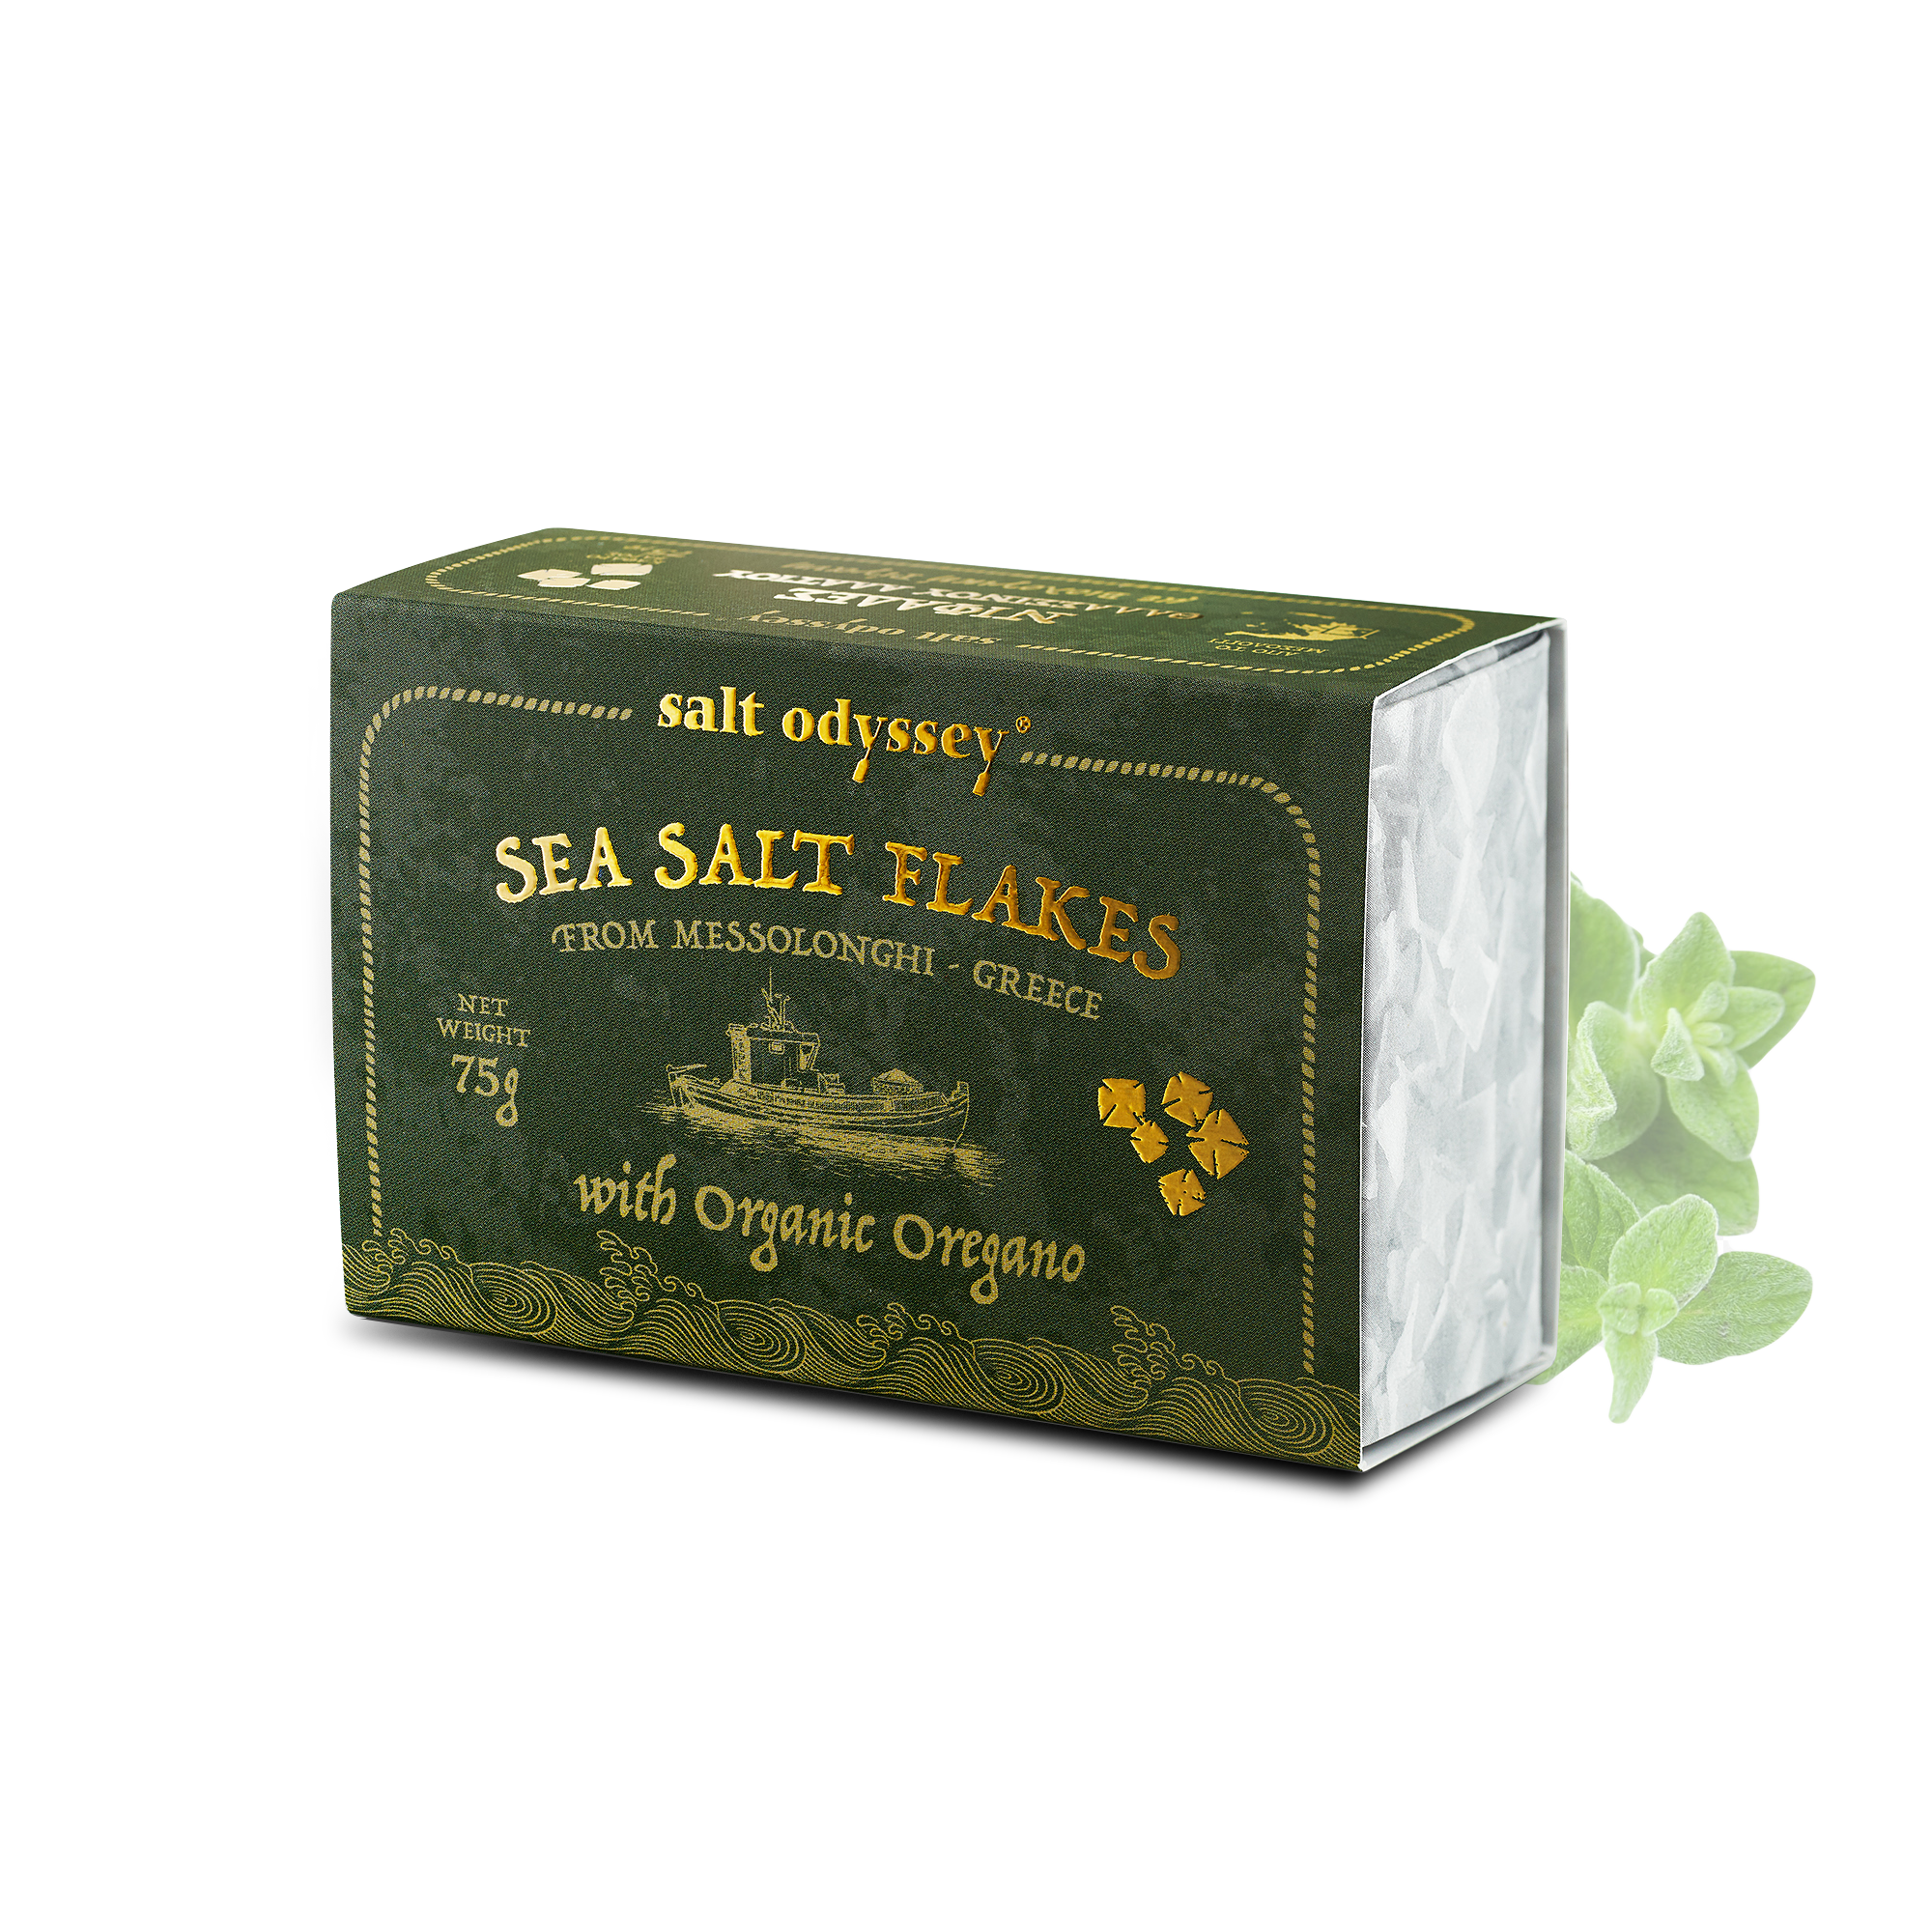 SALT ODYSSEY Meersalzflocken Oregano 75g - Loyal Taste